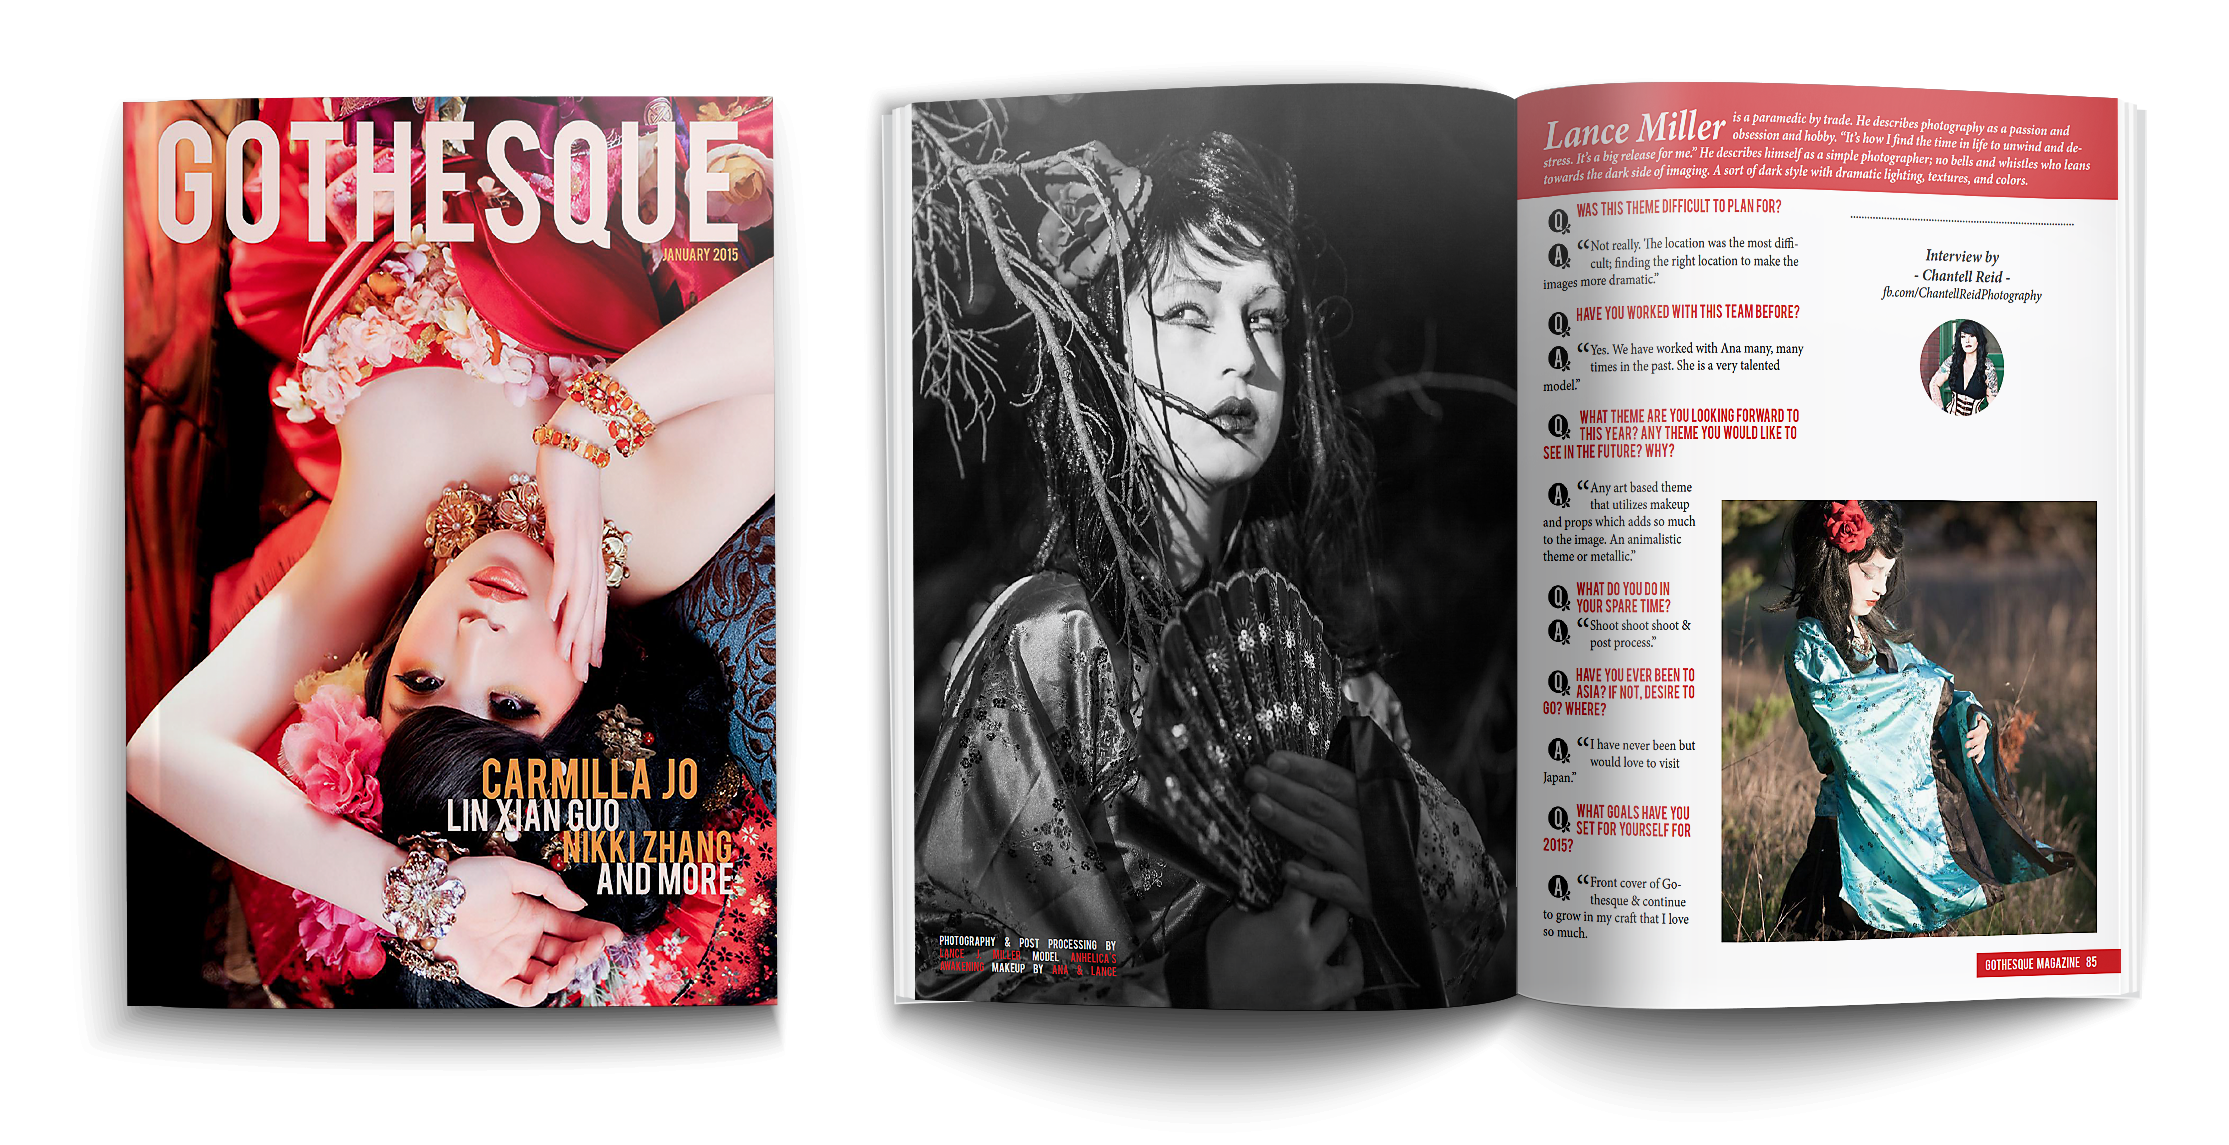 Gothesque_Magazine_Issue_20_January_2015_Render3.png